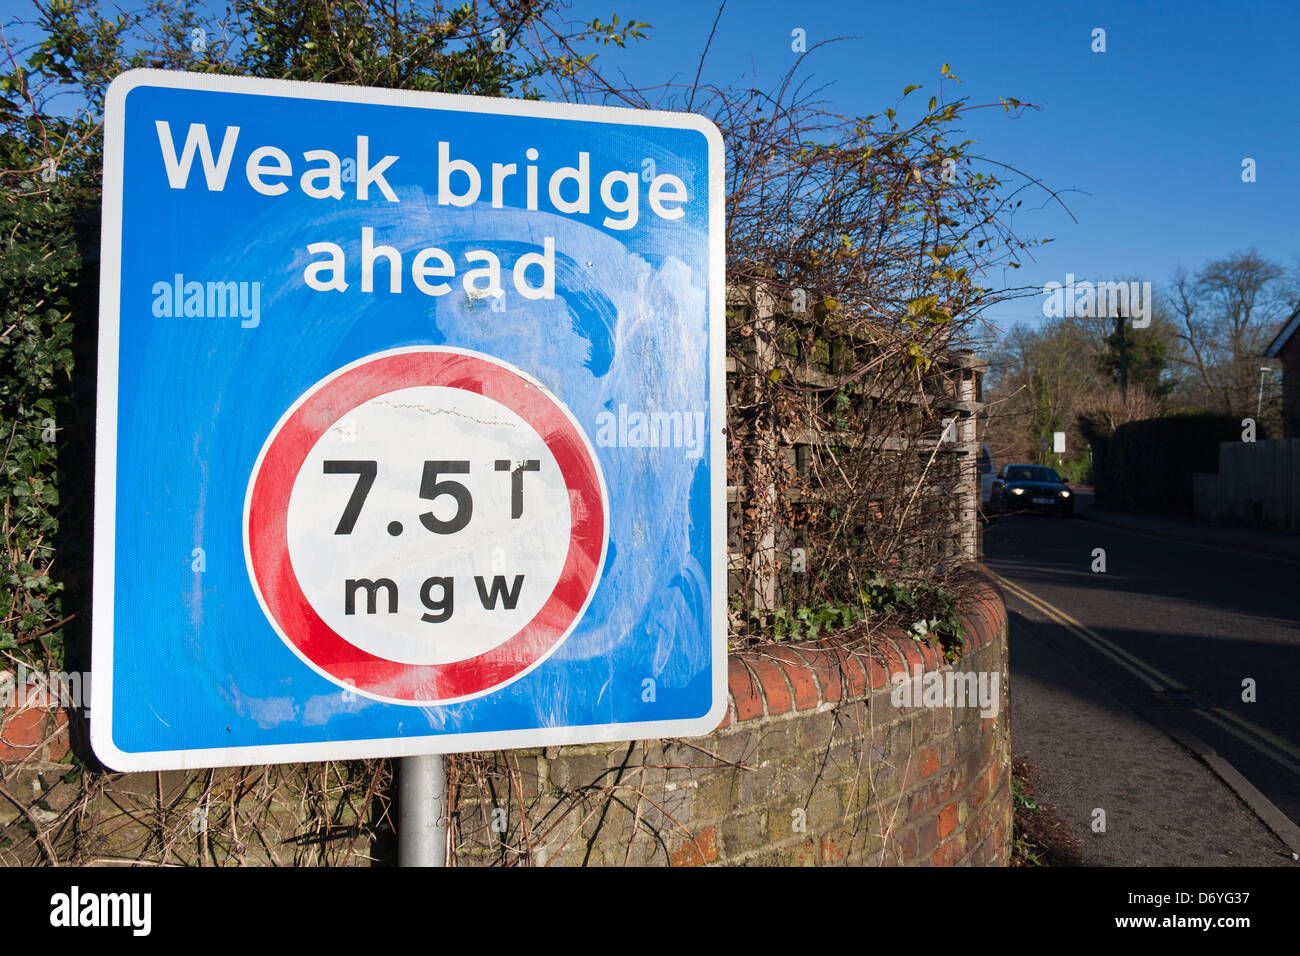 Sign warning of a weak bridge ahead with a weight limit imposed. - Stock Image